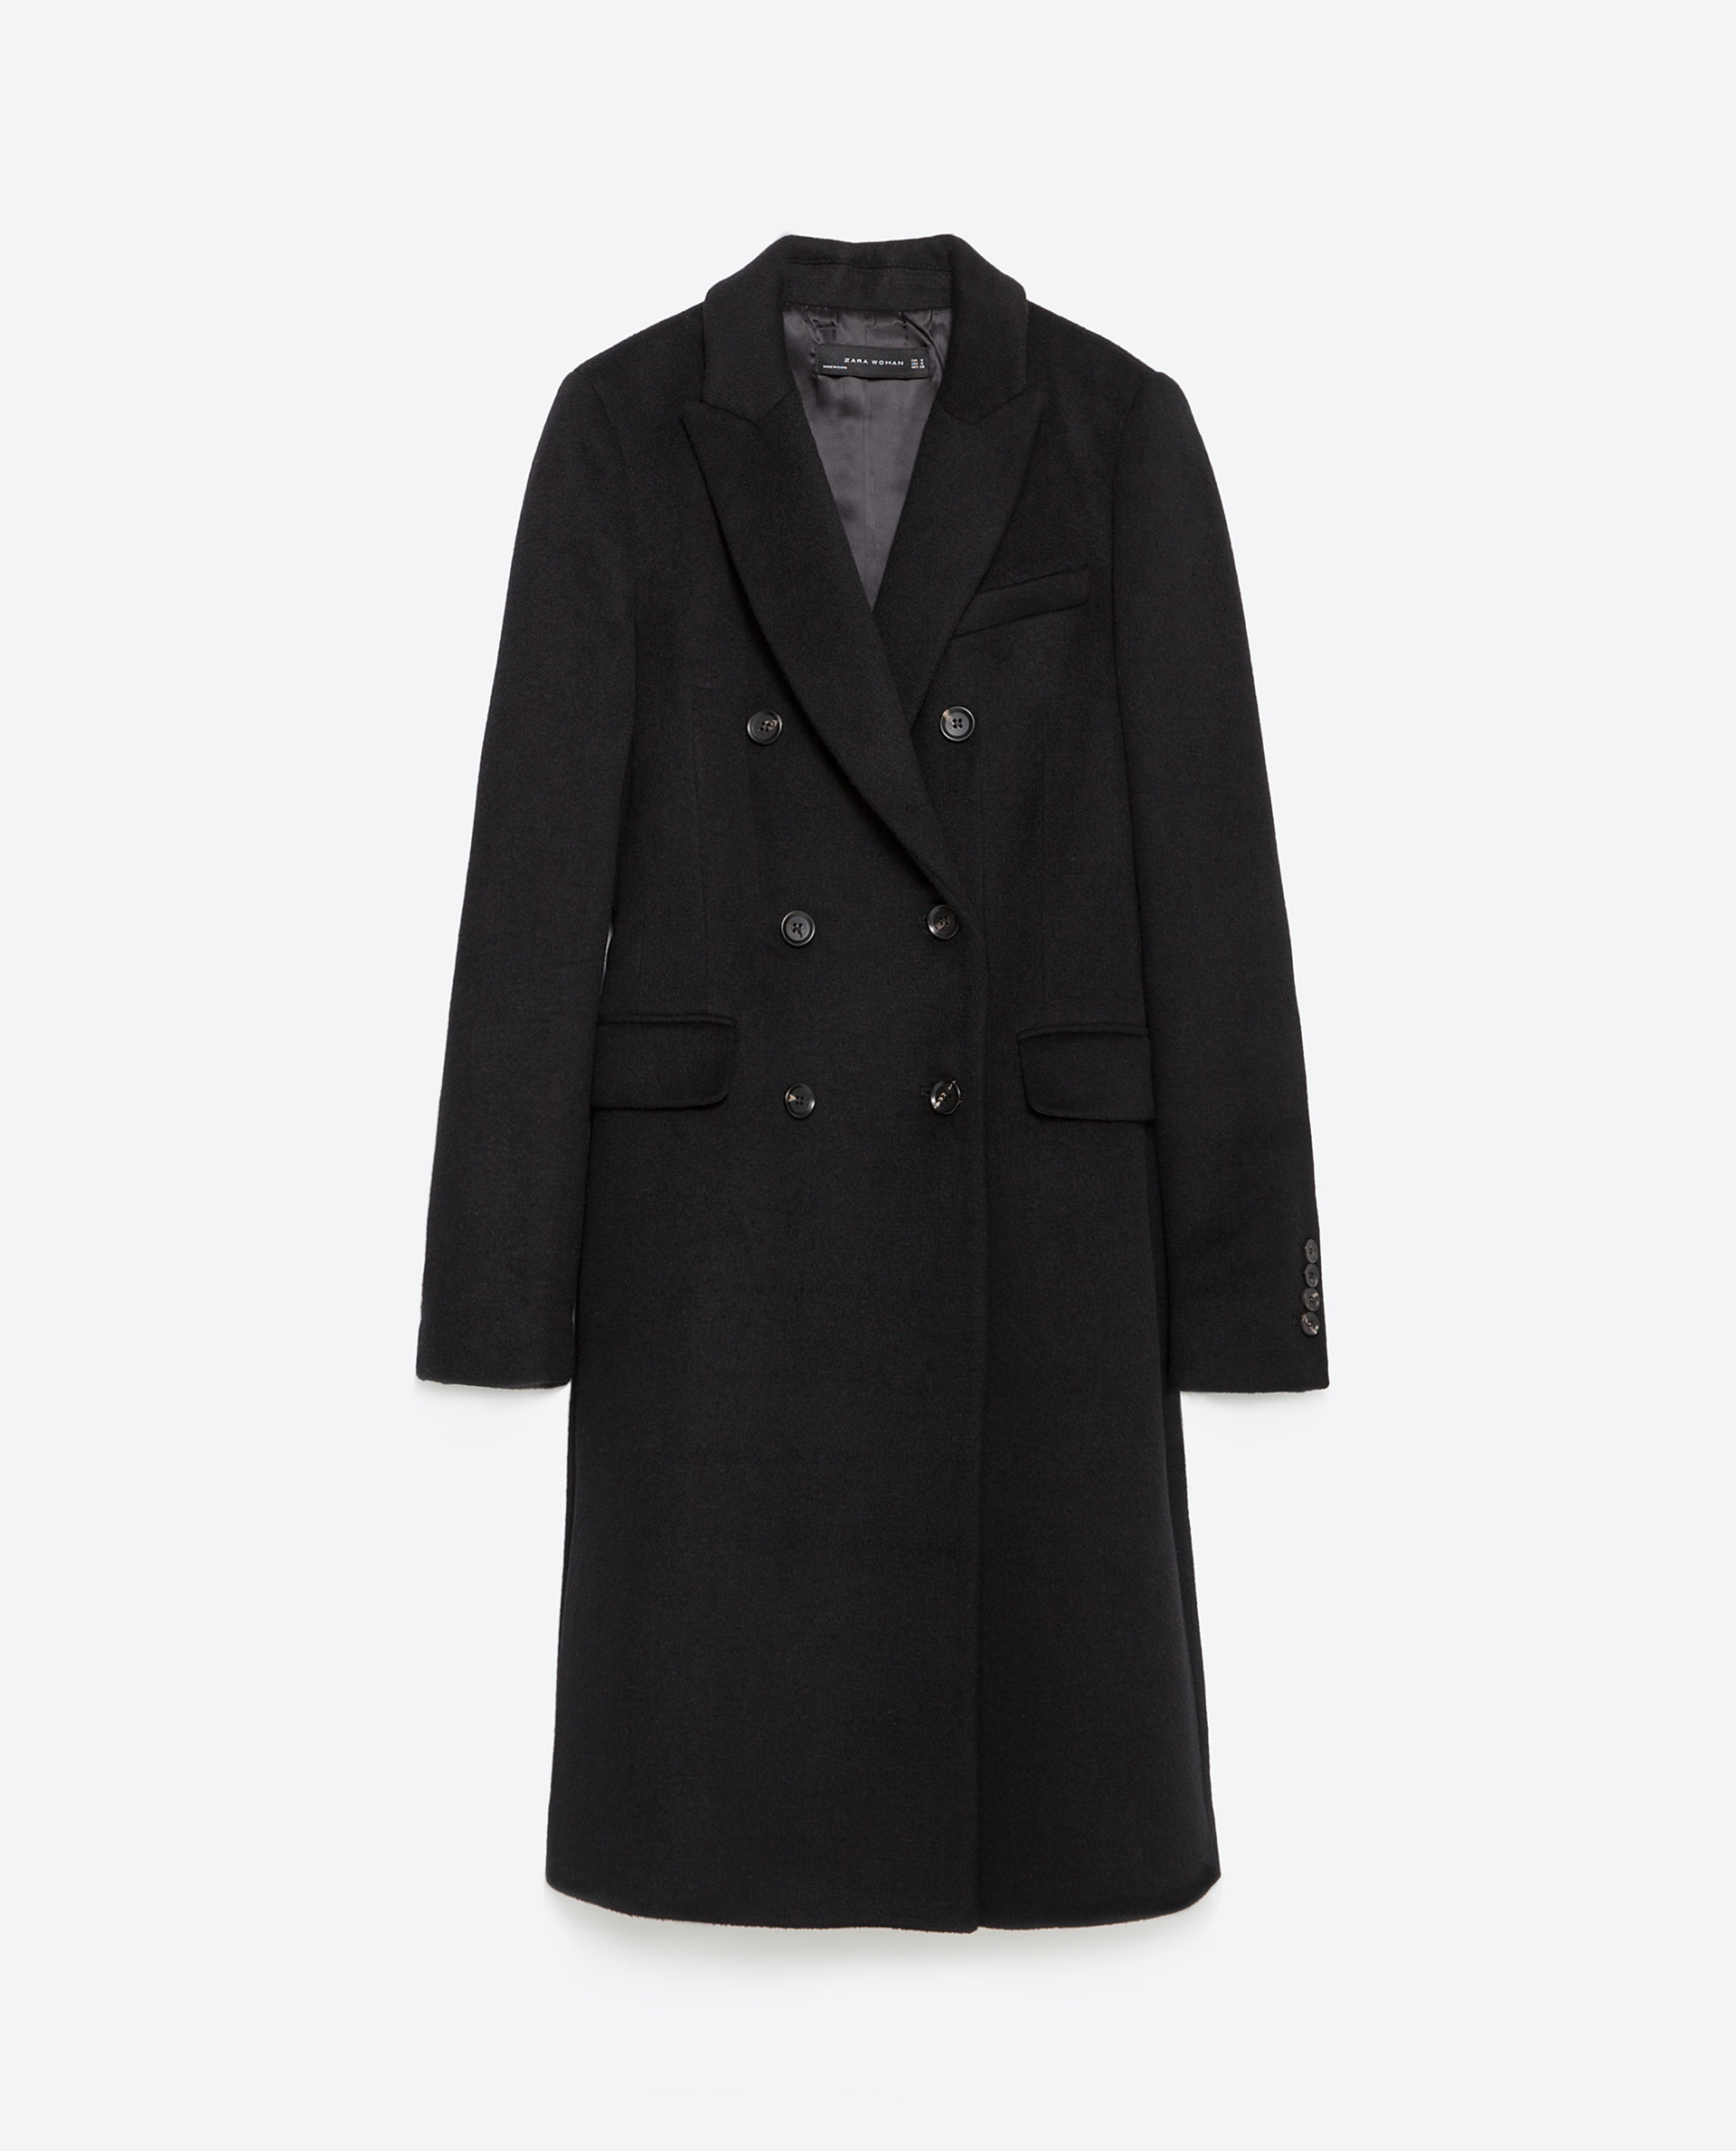 2020 authentic wholesale price DOUBLE BREASTED LAPEL COAT - Wool - Premium - WOMAN | ZARA United States